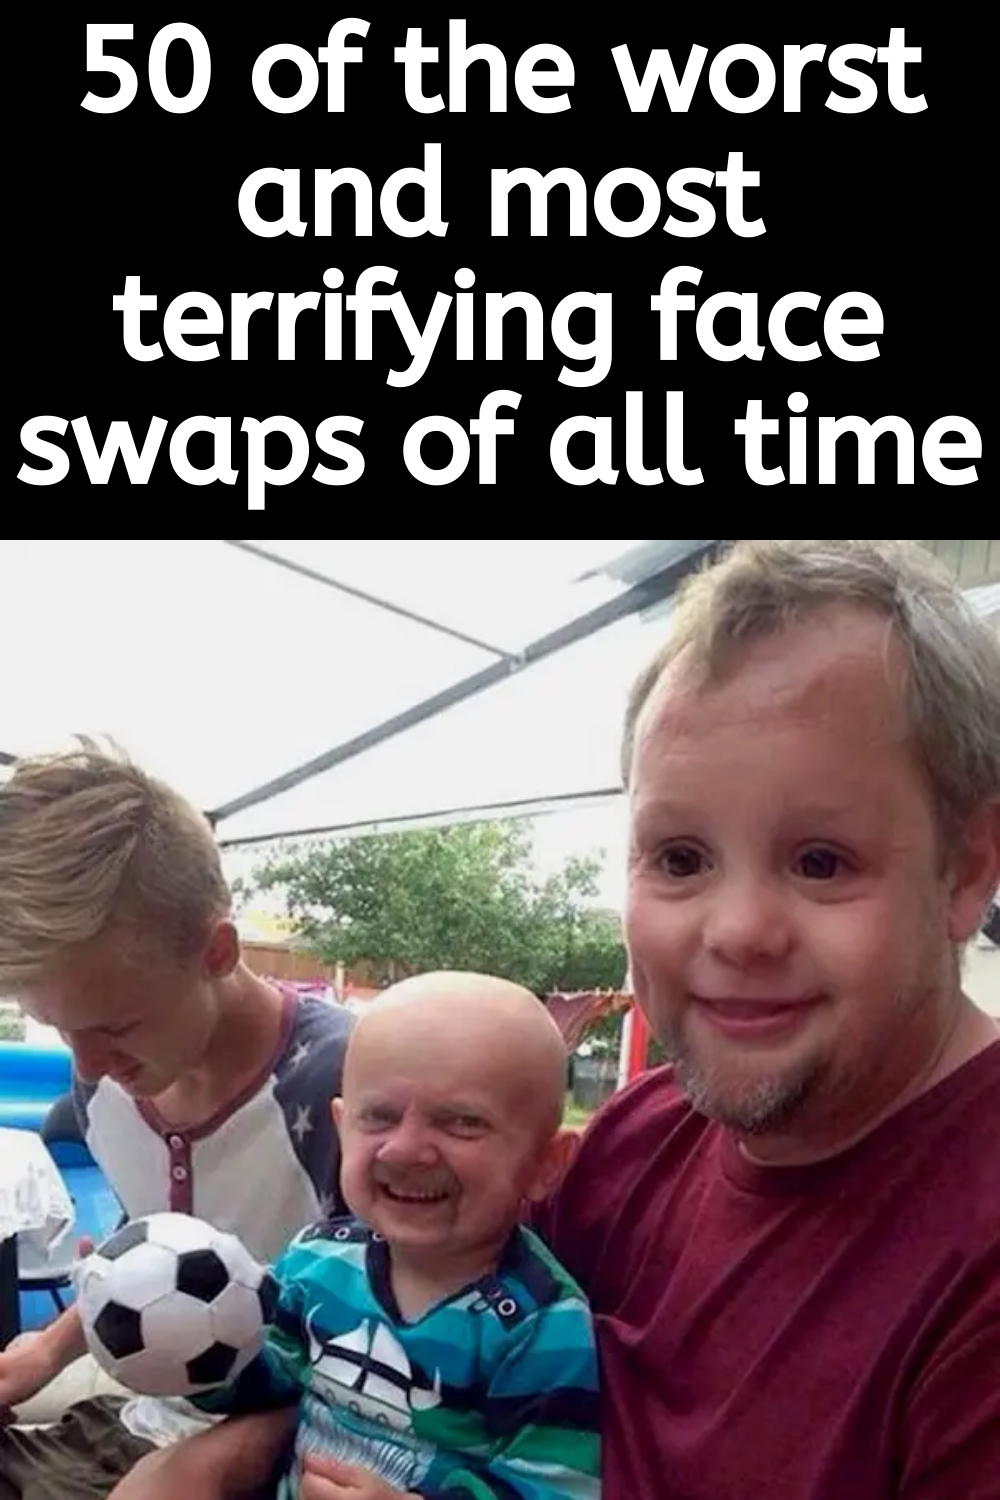 50 of the worst and most terrifying face swaps of all time